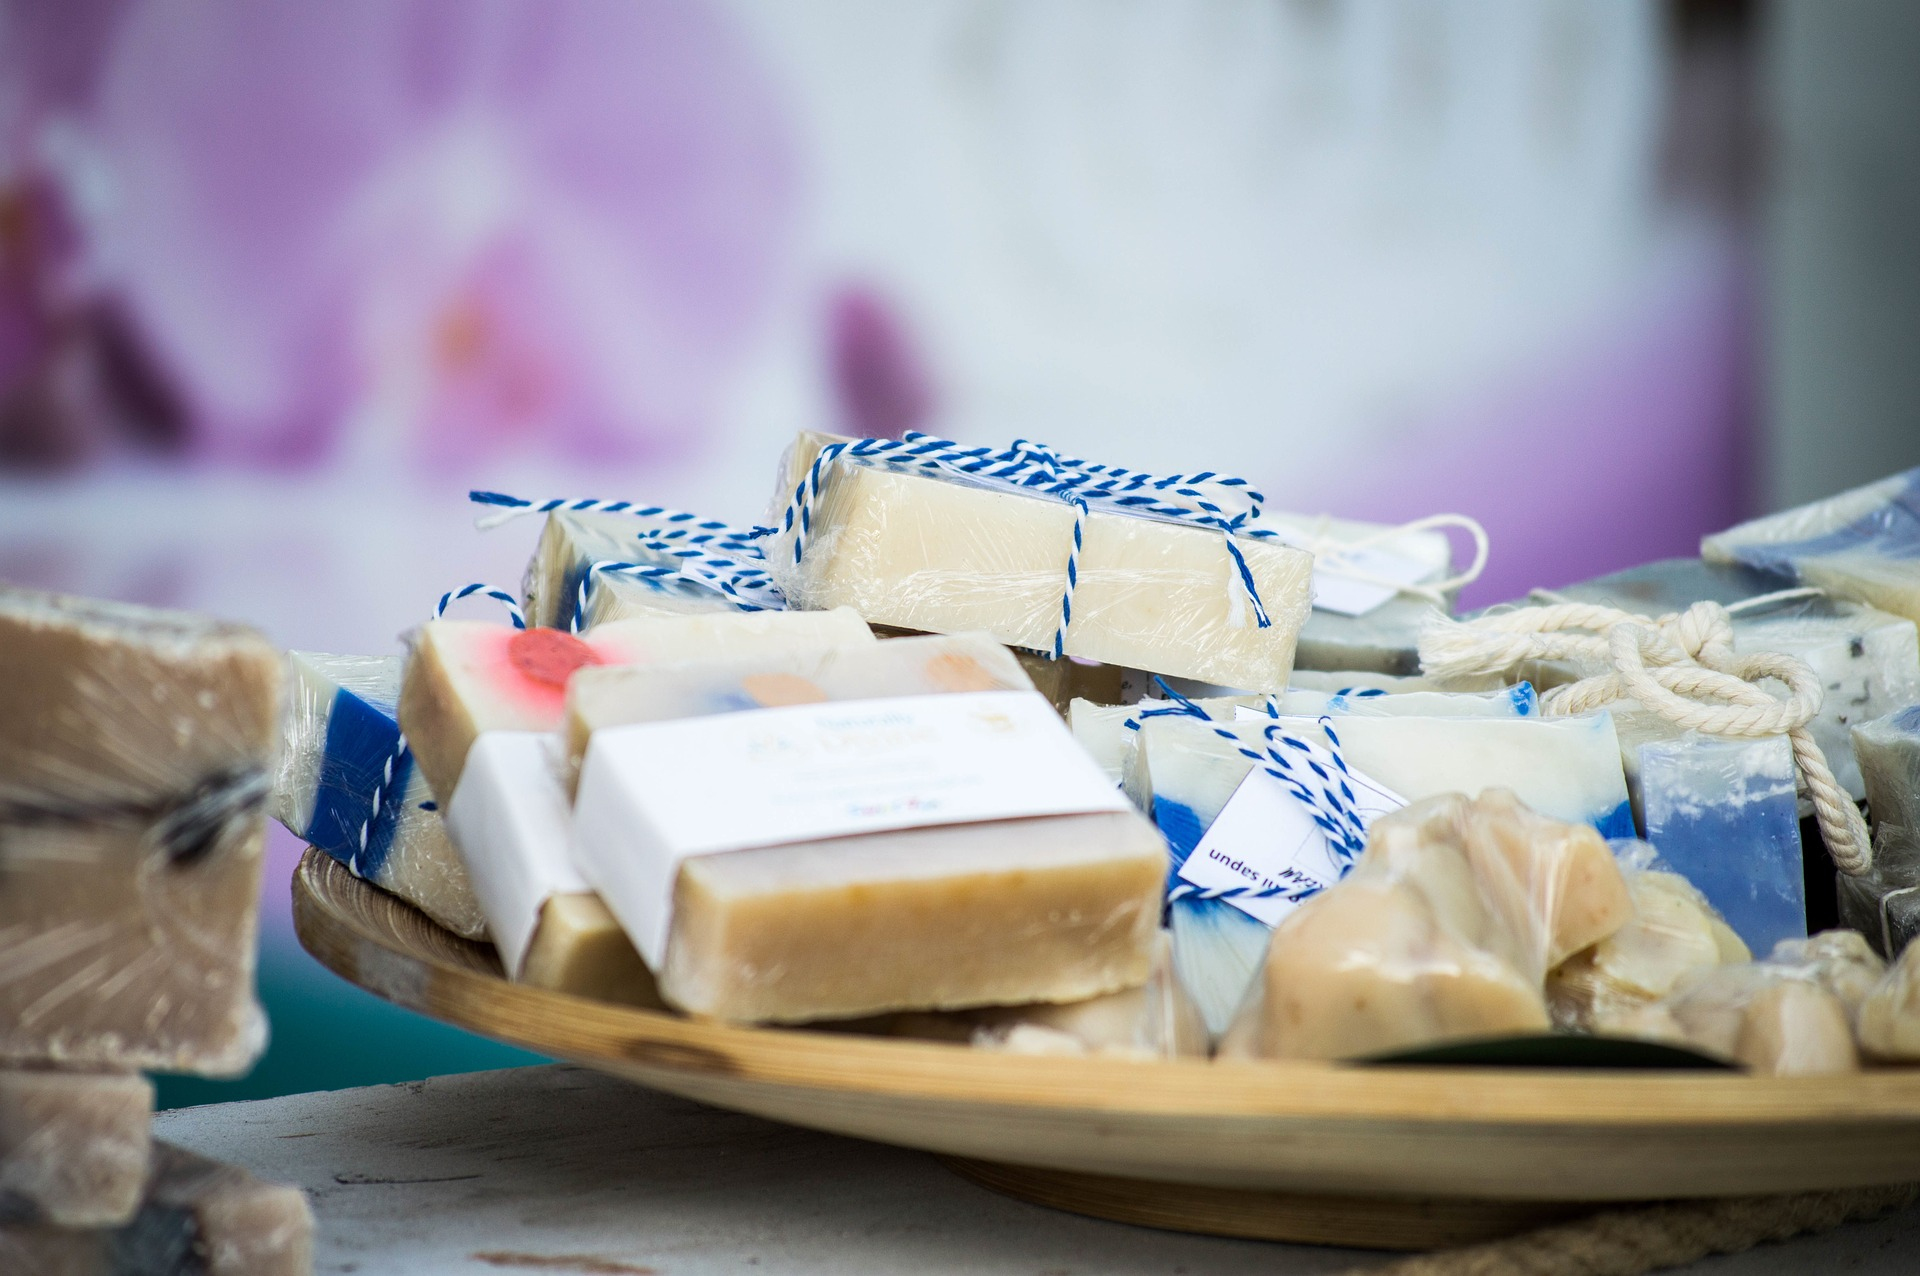 Homemade soap making – the pros and cons